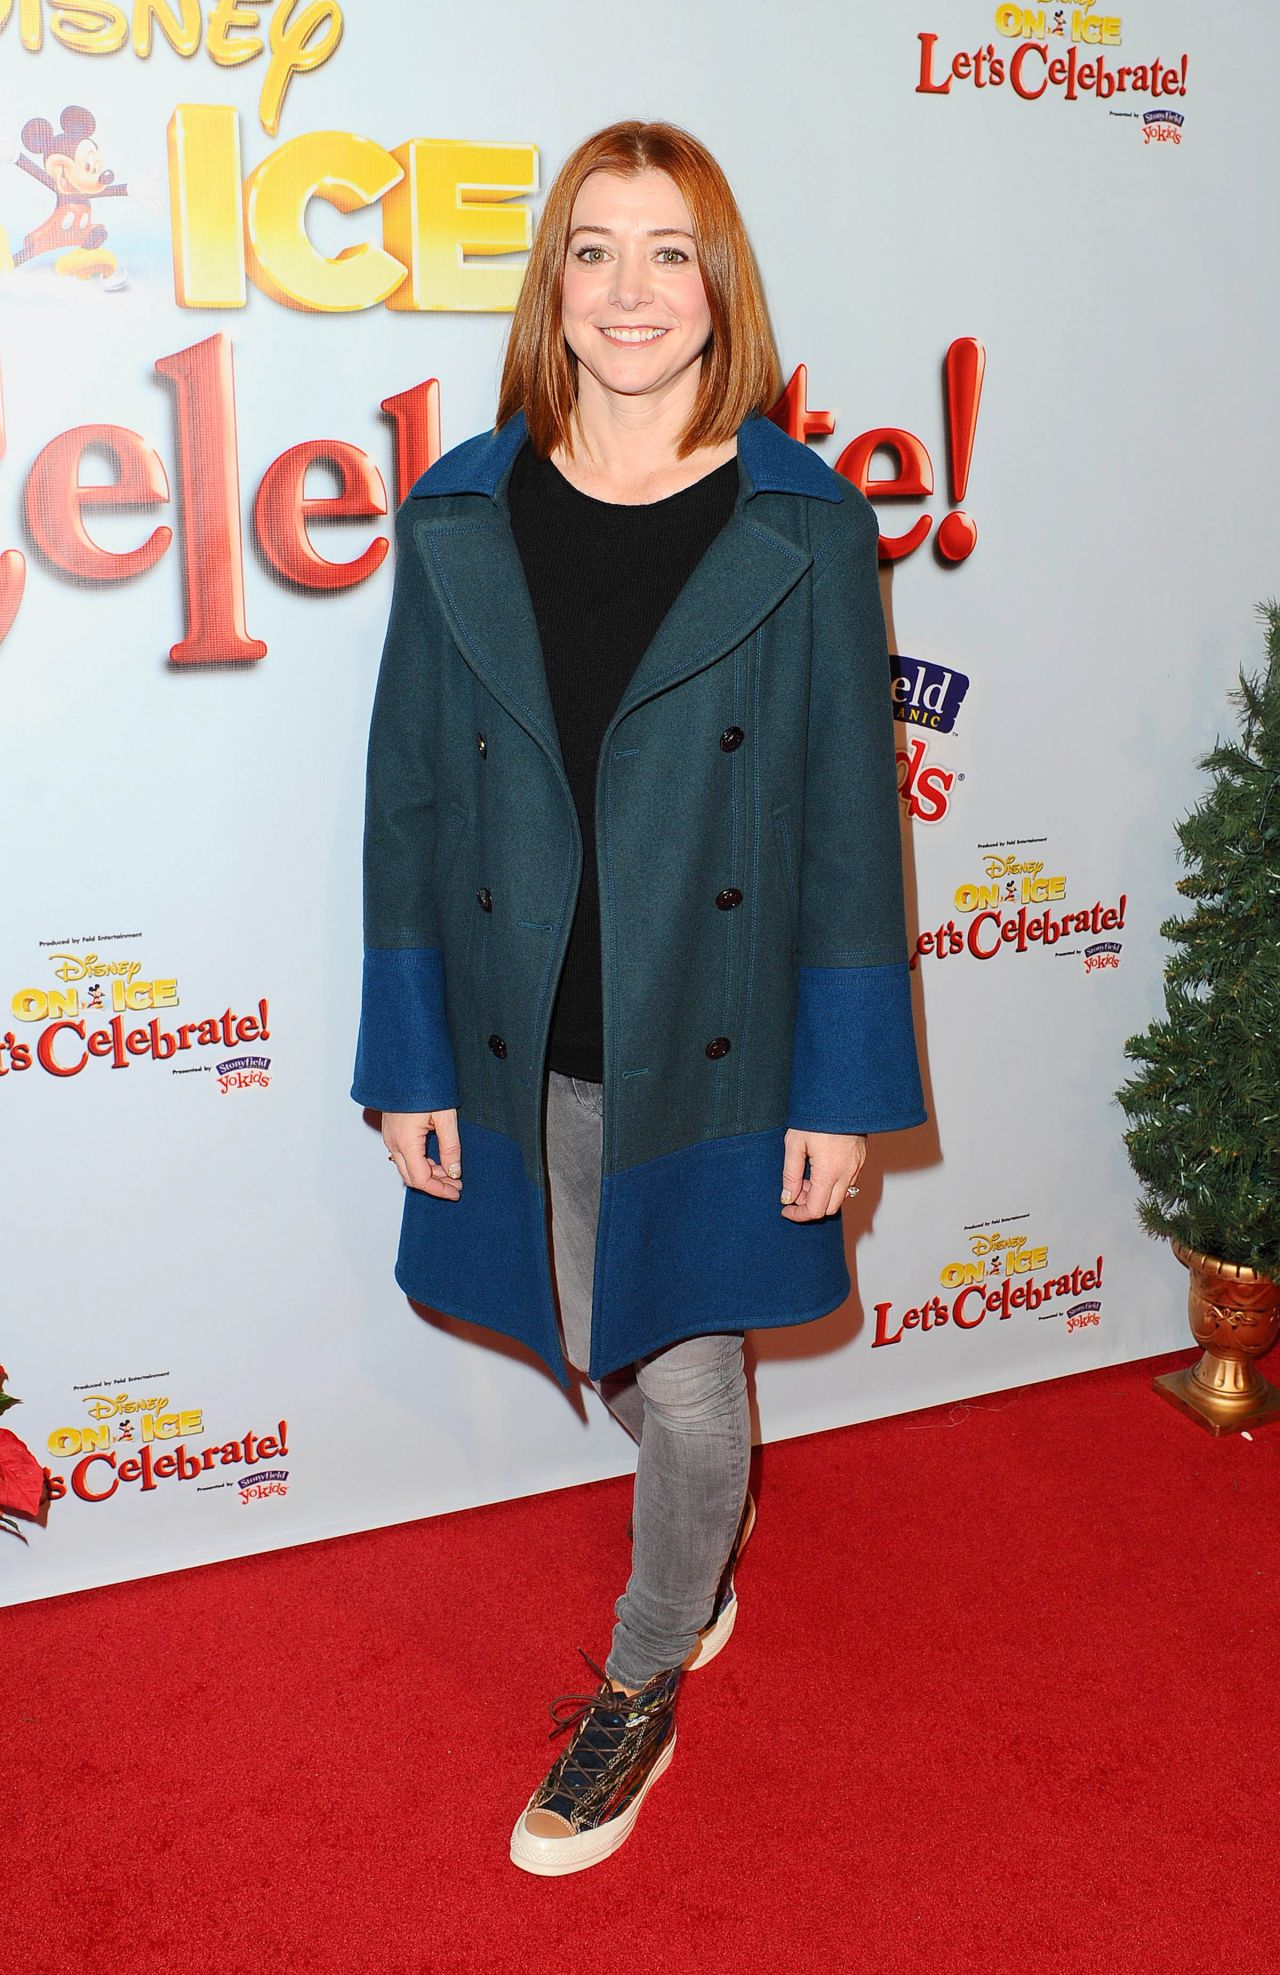 Alyson Hannigan – Disney On Ice Presents – Let's Celebrate! in Los Angeles, Dec. 2014